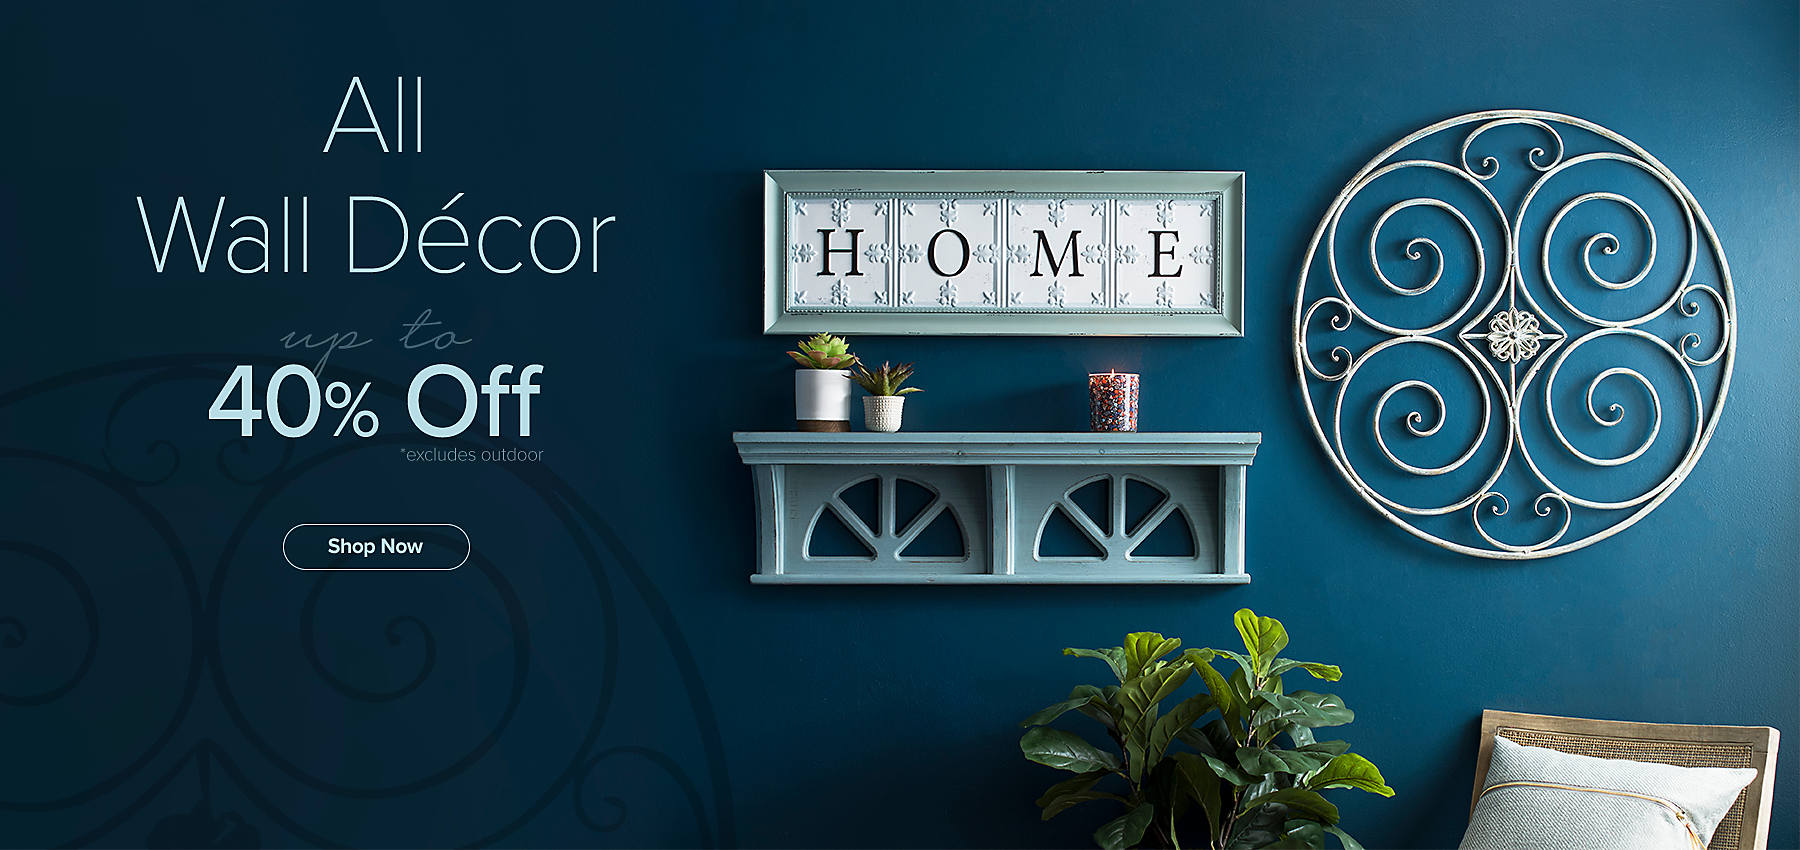 Up to 40% Off Wall Decor - Shop Now